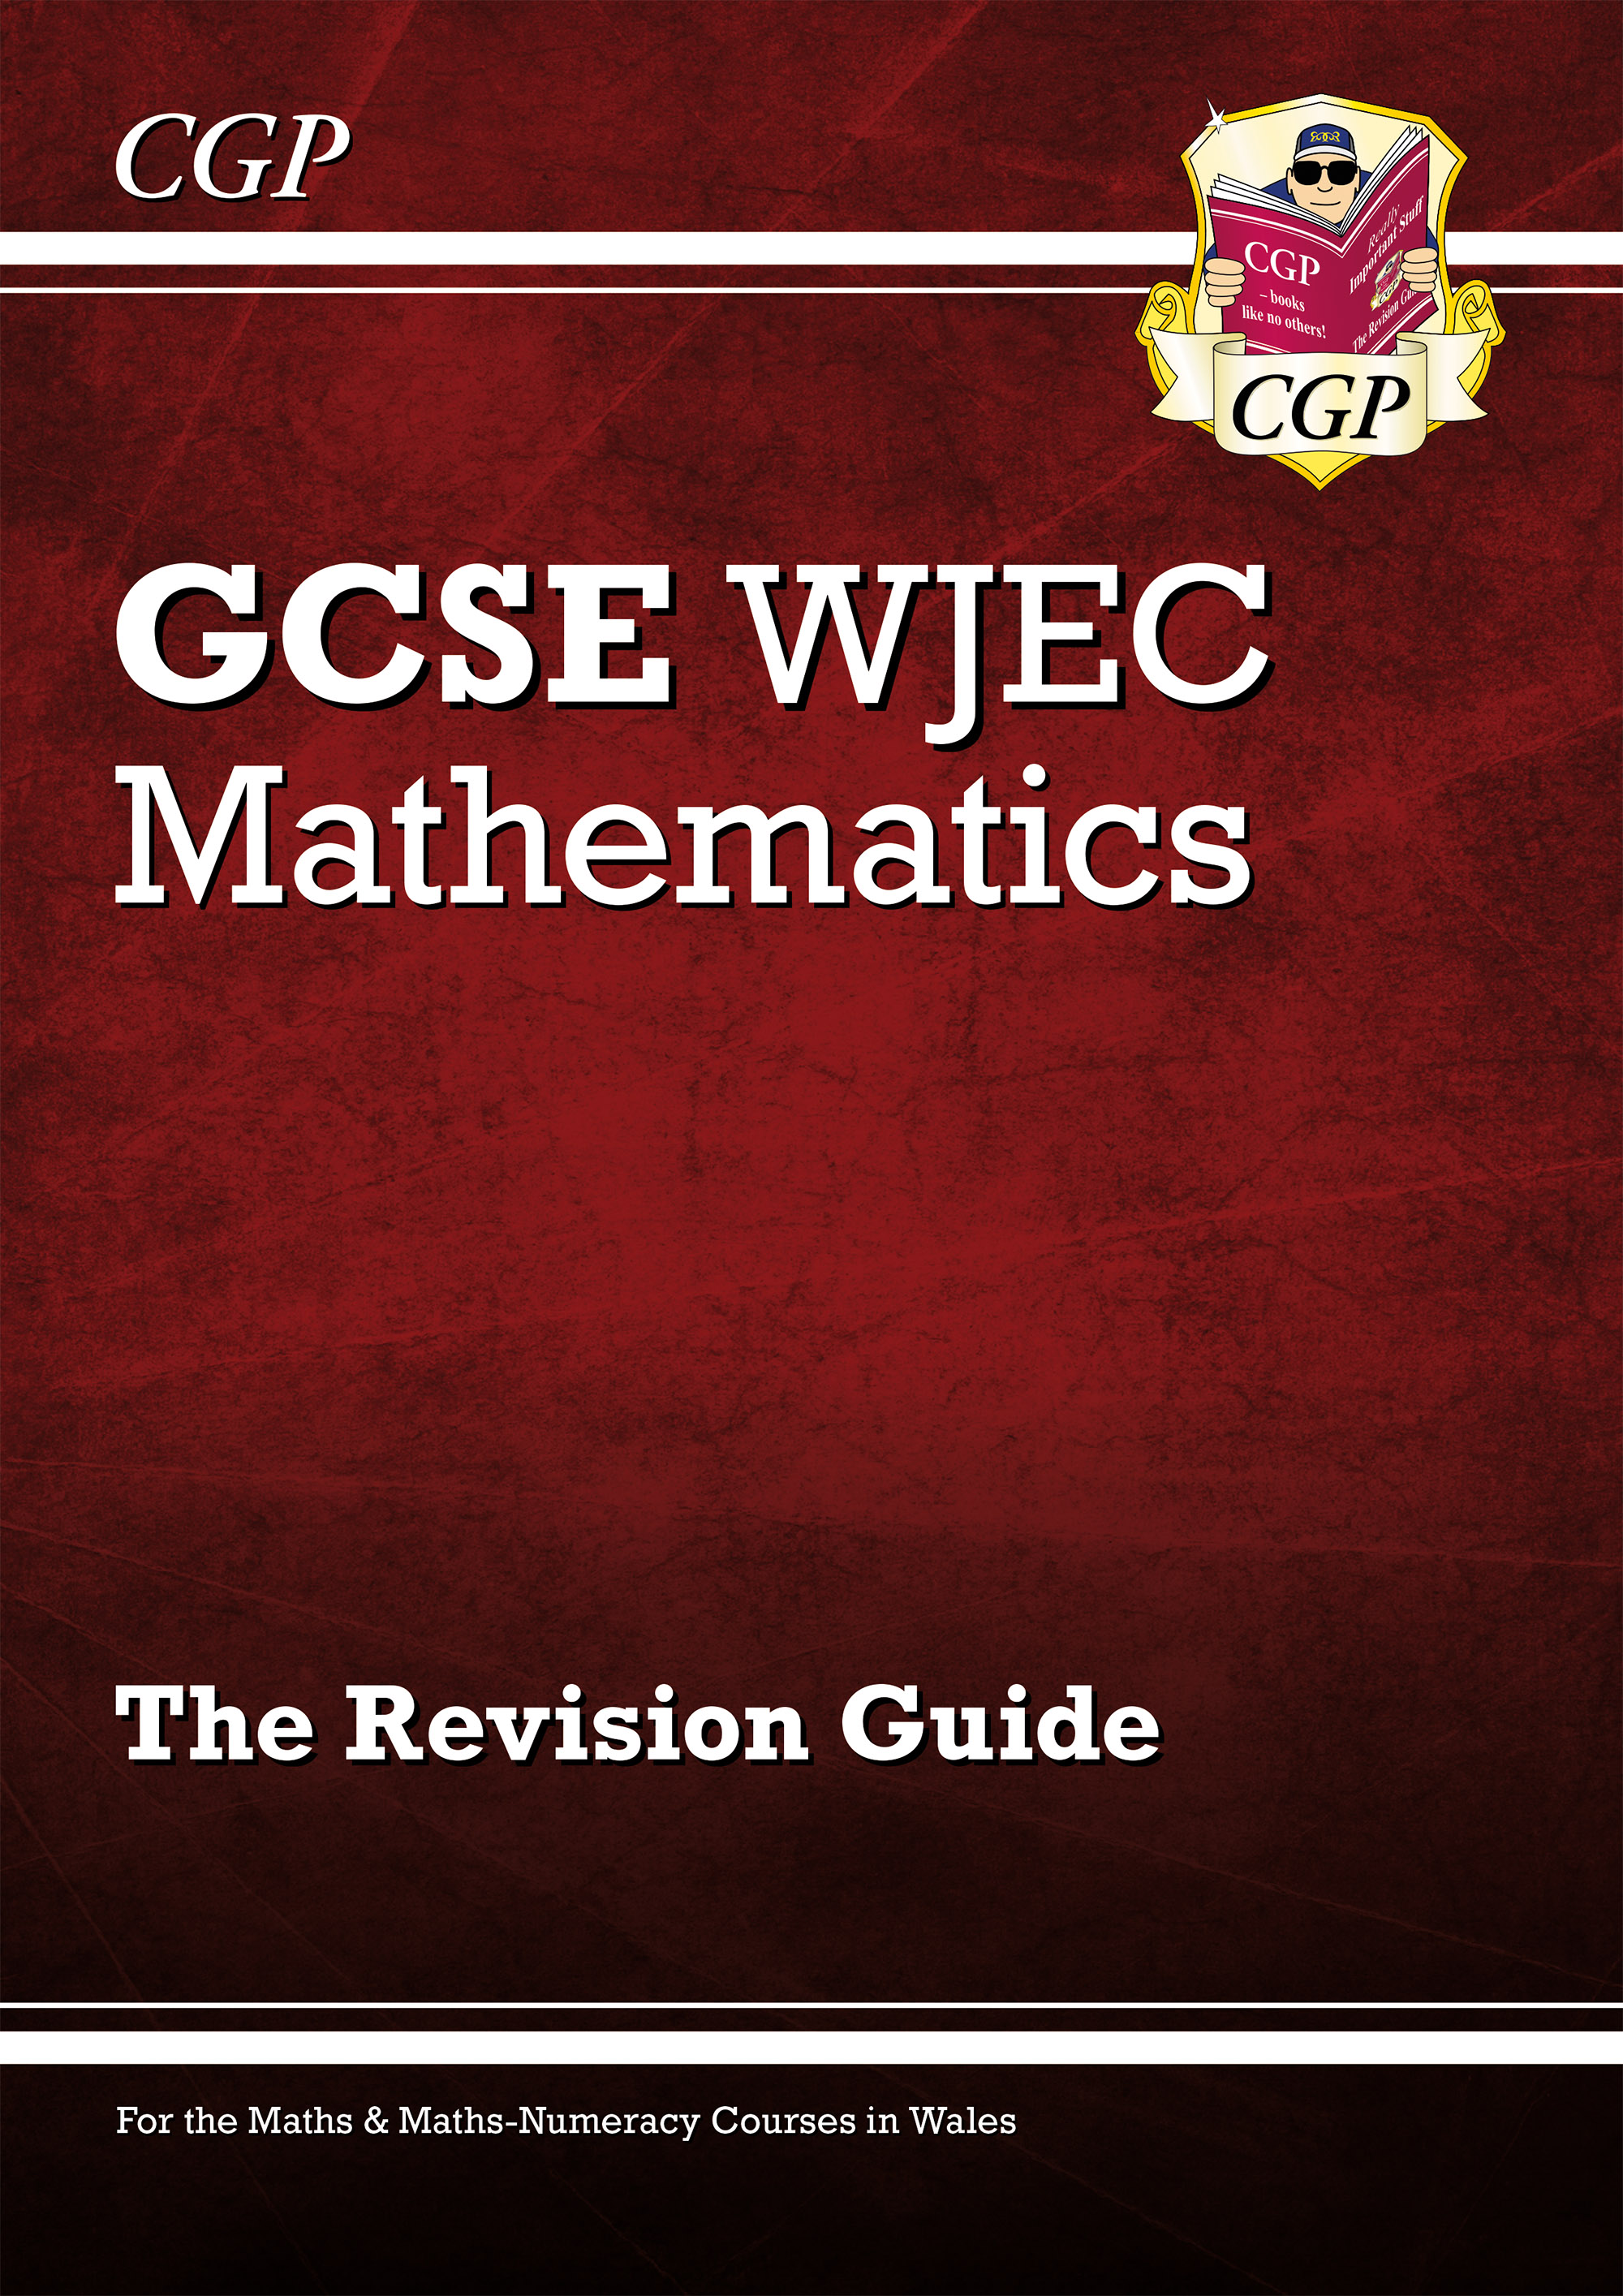 MWHR42DK - New GCSE Maths WJEC (Wales) Revision Guide